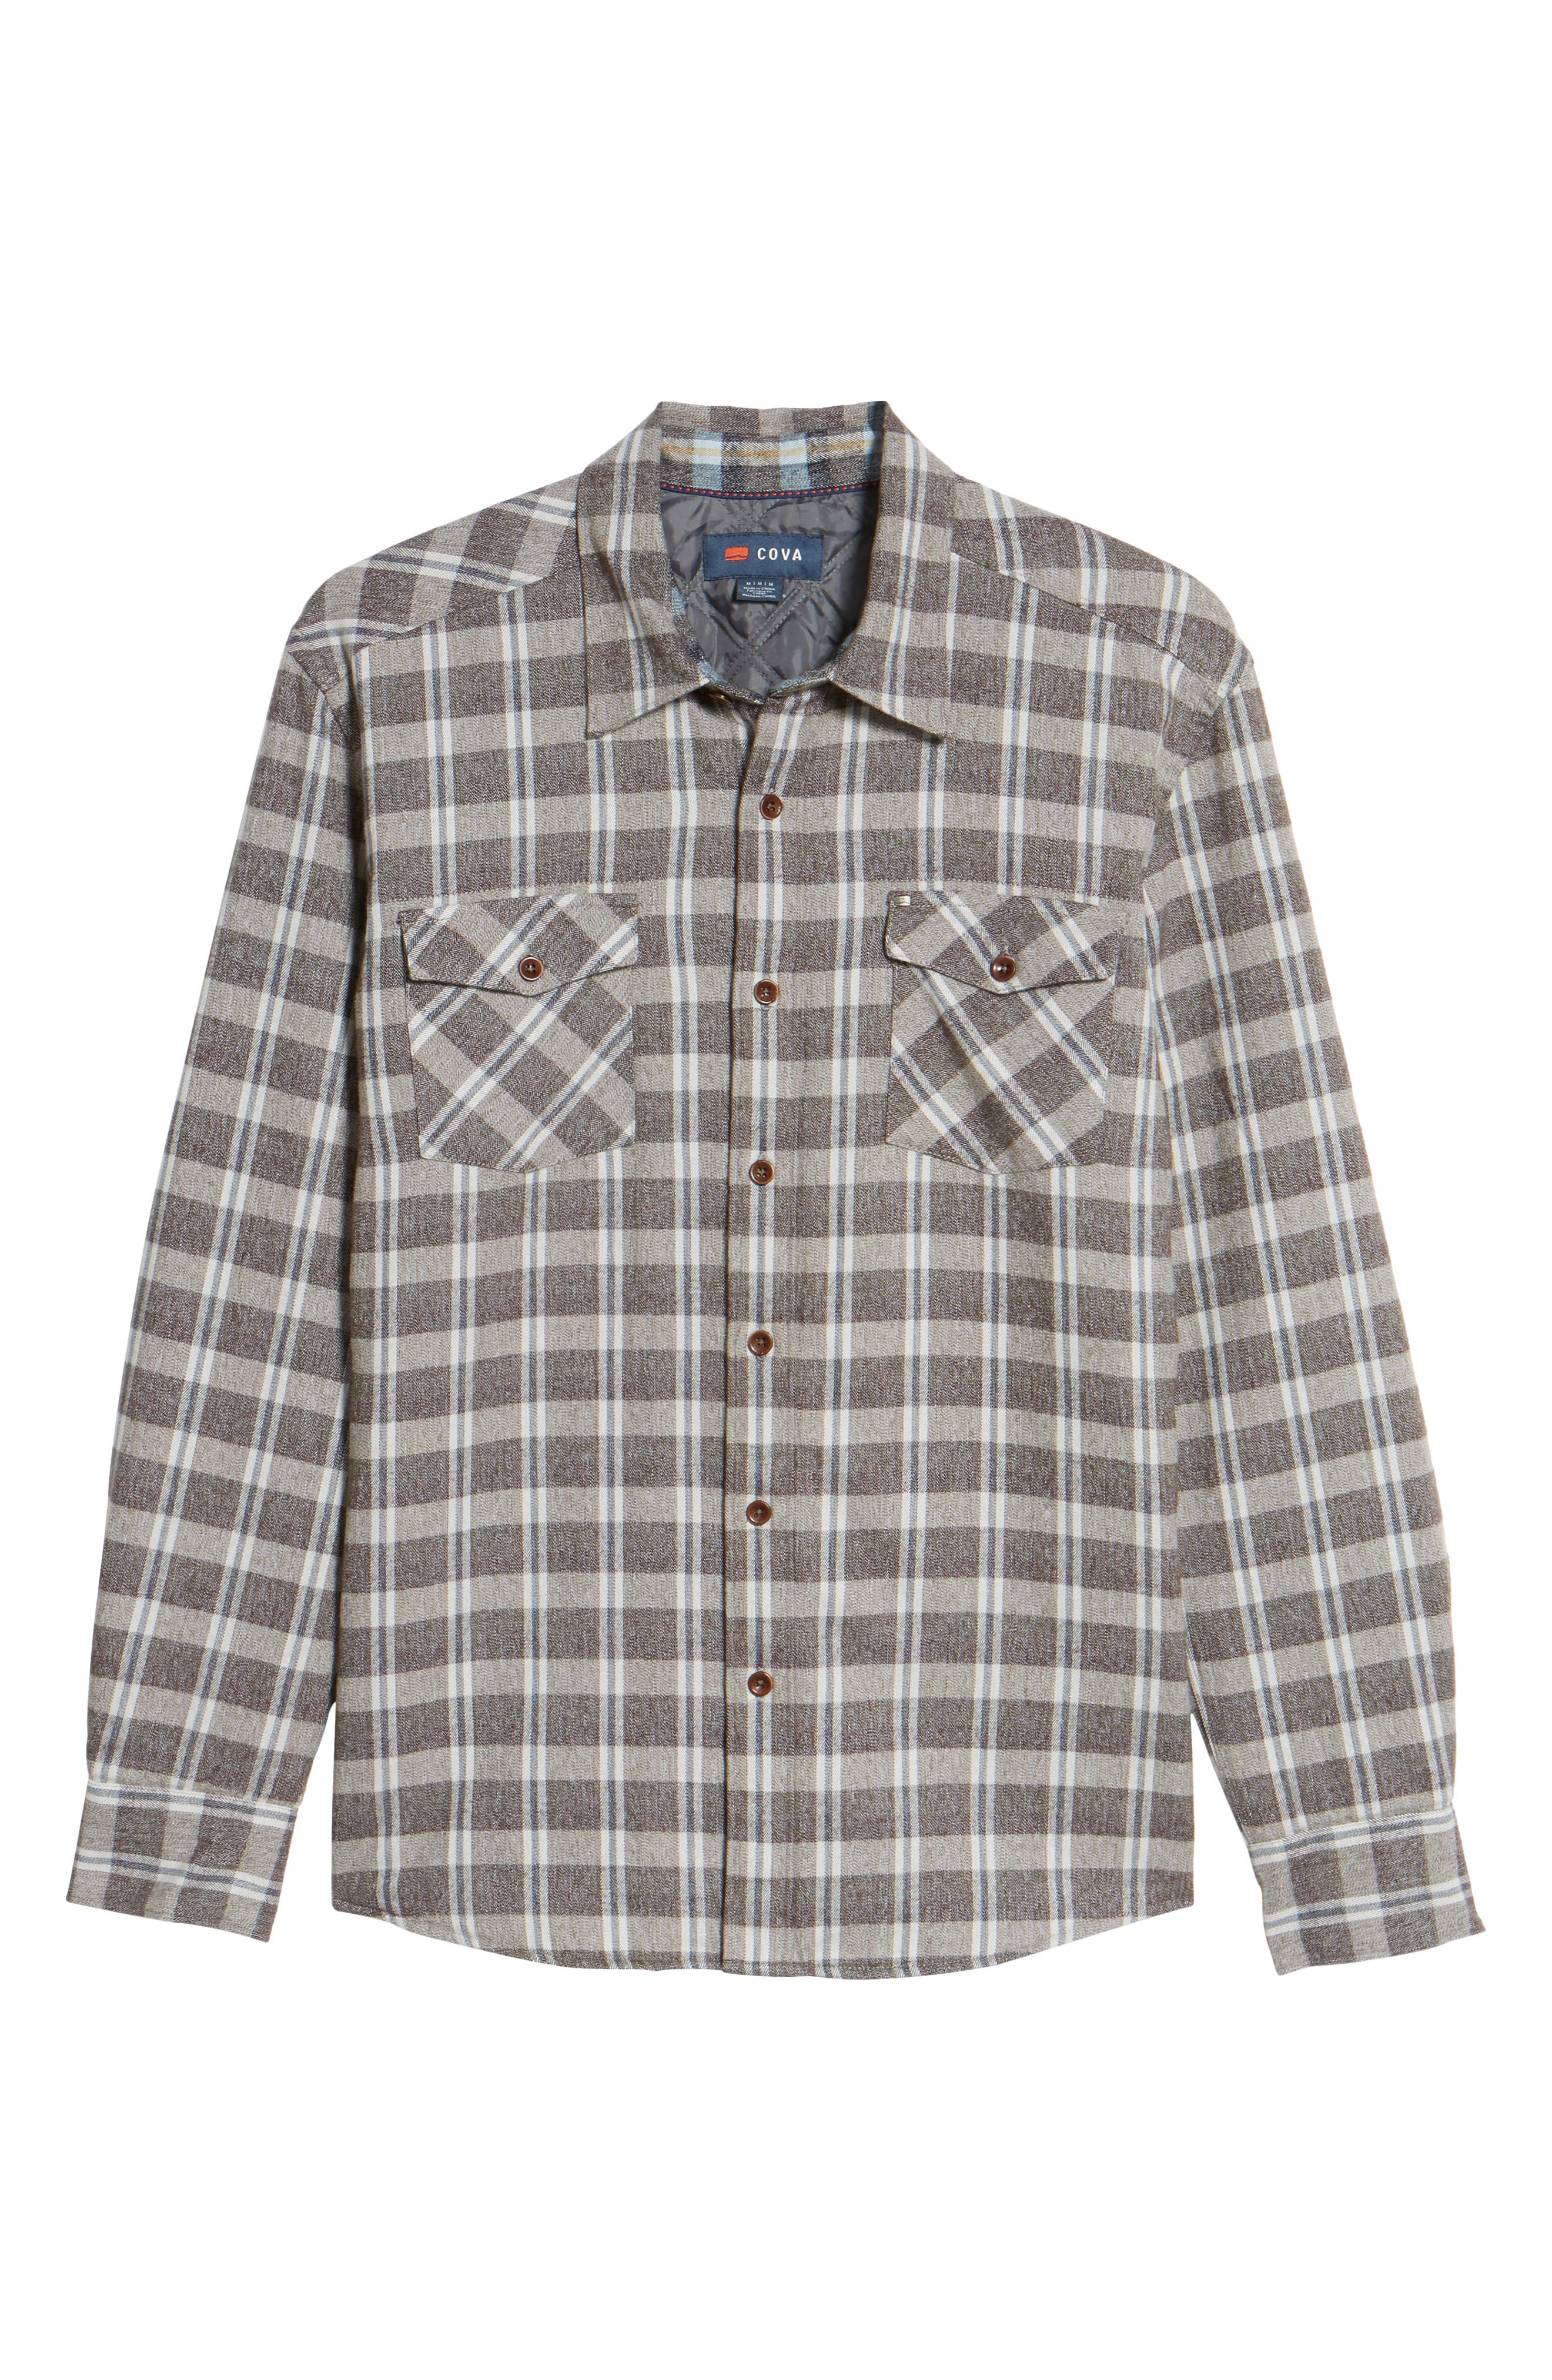 Emerald Bay Regular Fit Plaid Shirt Jacket,                             Alternate thumbnail 6, color,